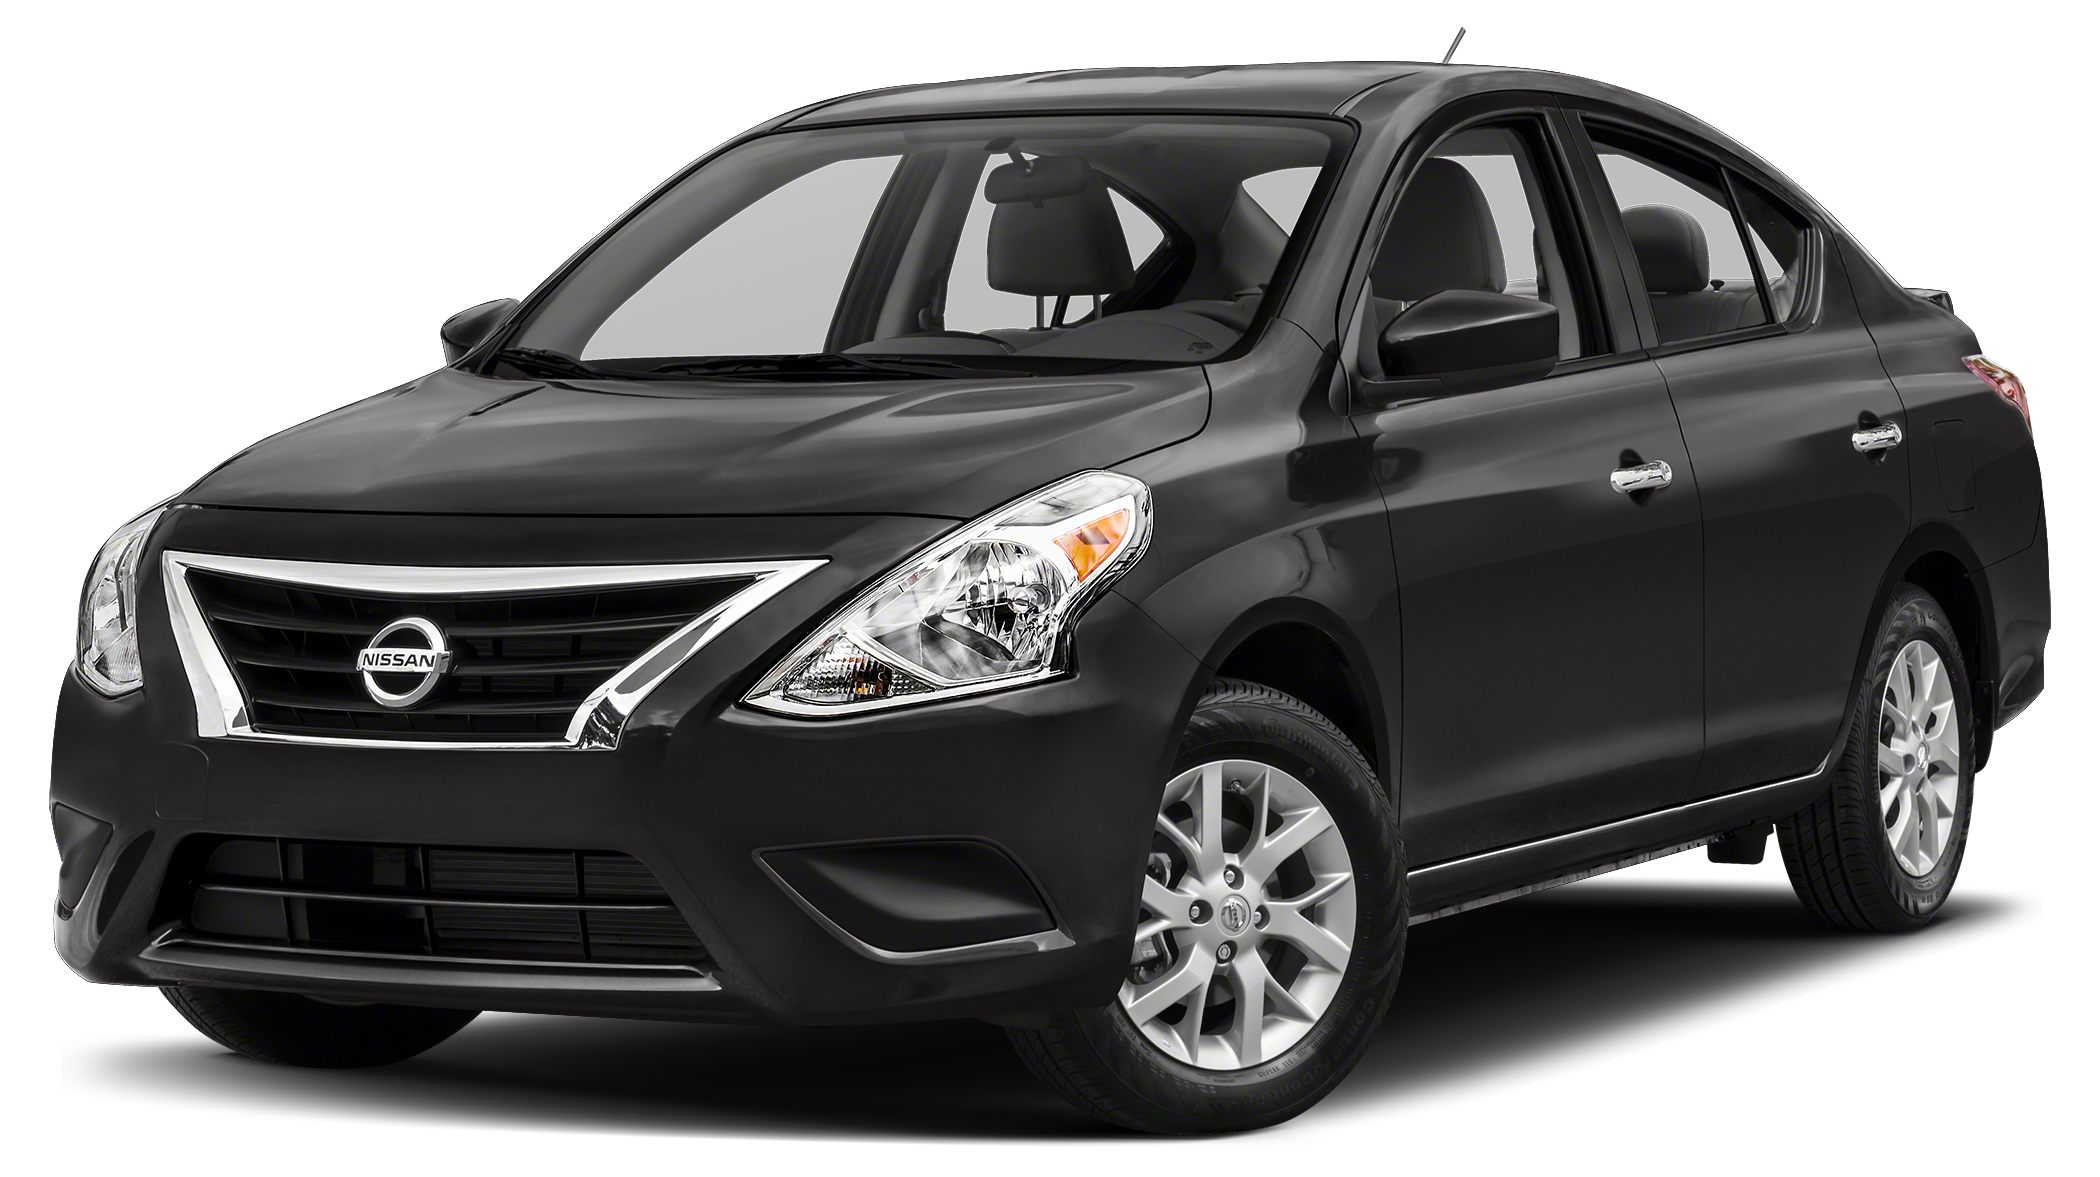 2015 Nissan Versa 16 S Miles 31823Color Amethyst Gray Stock 7170075A VIN 3N1CN7APXFL875264